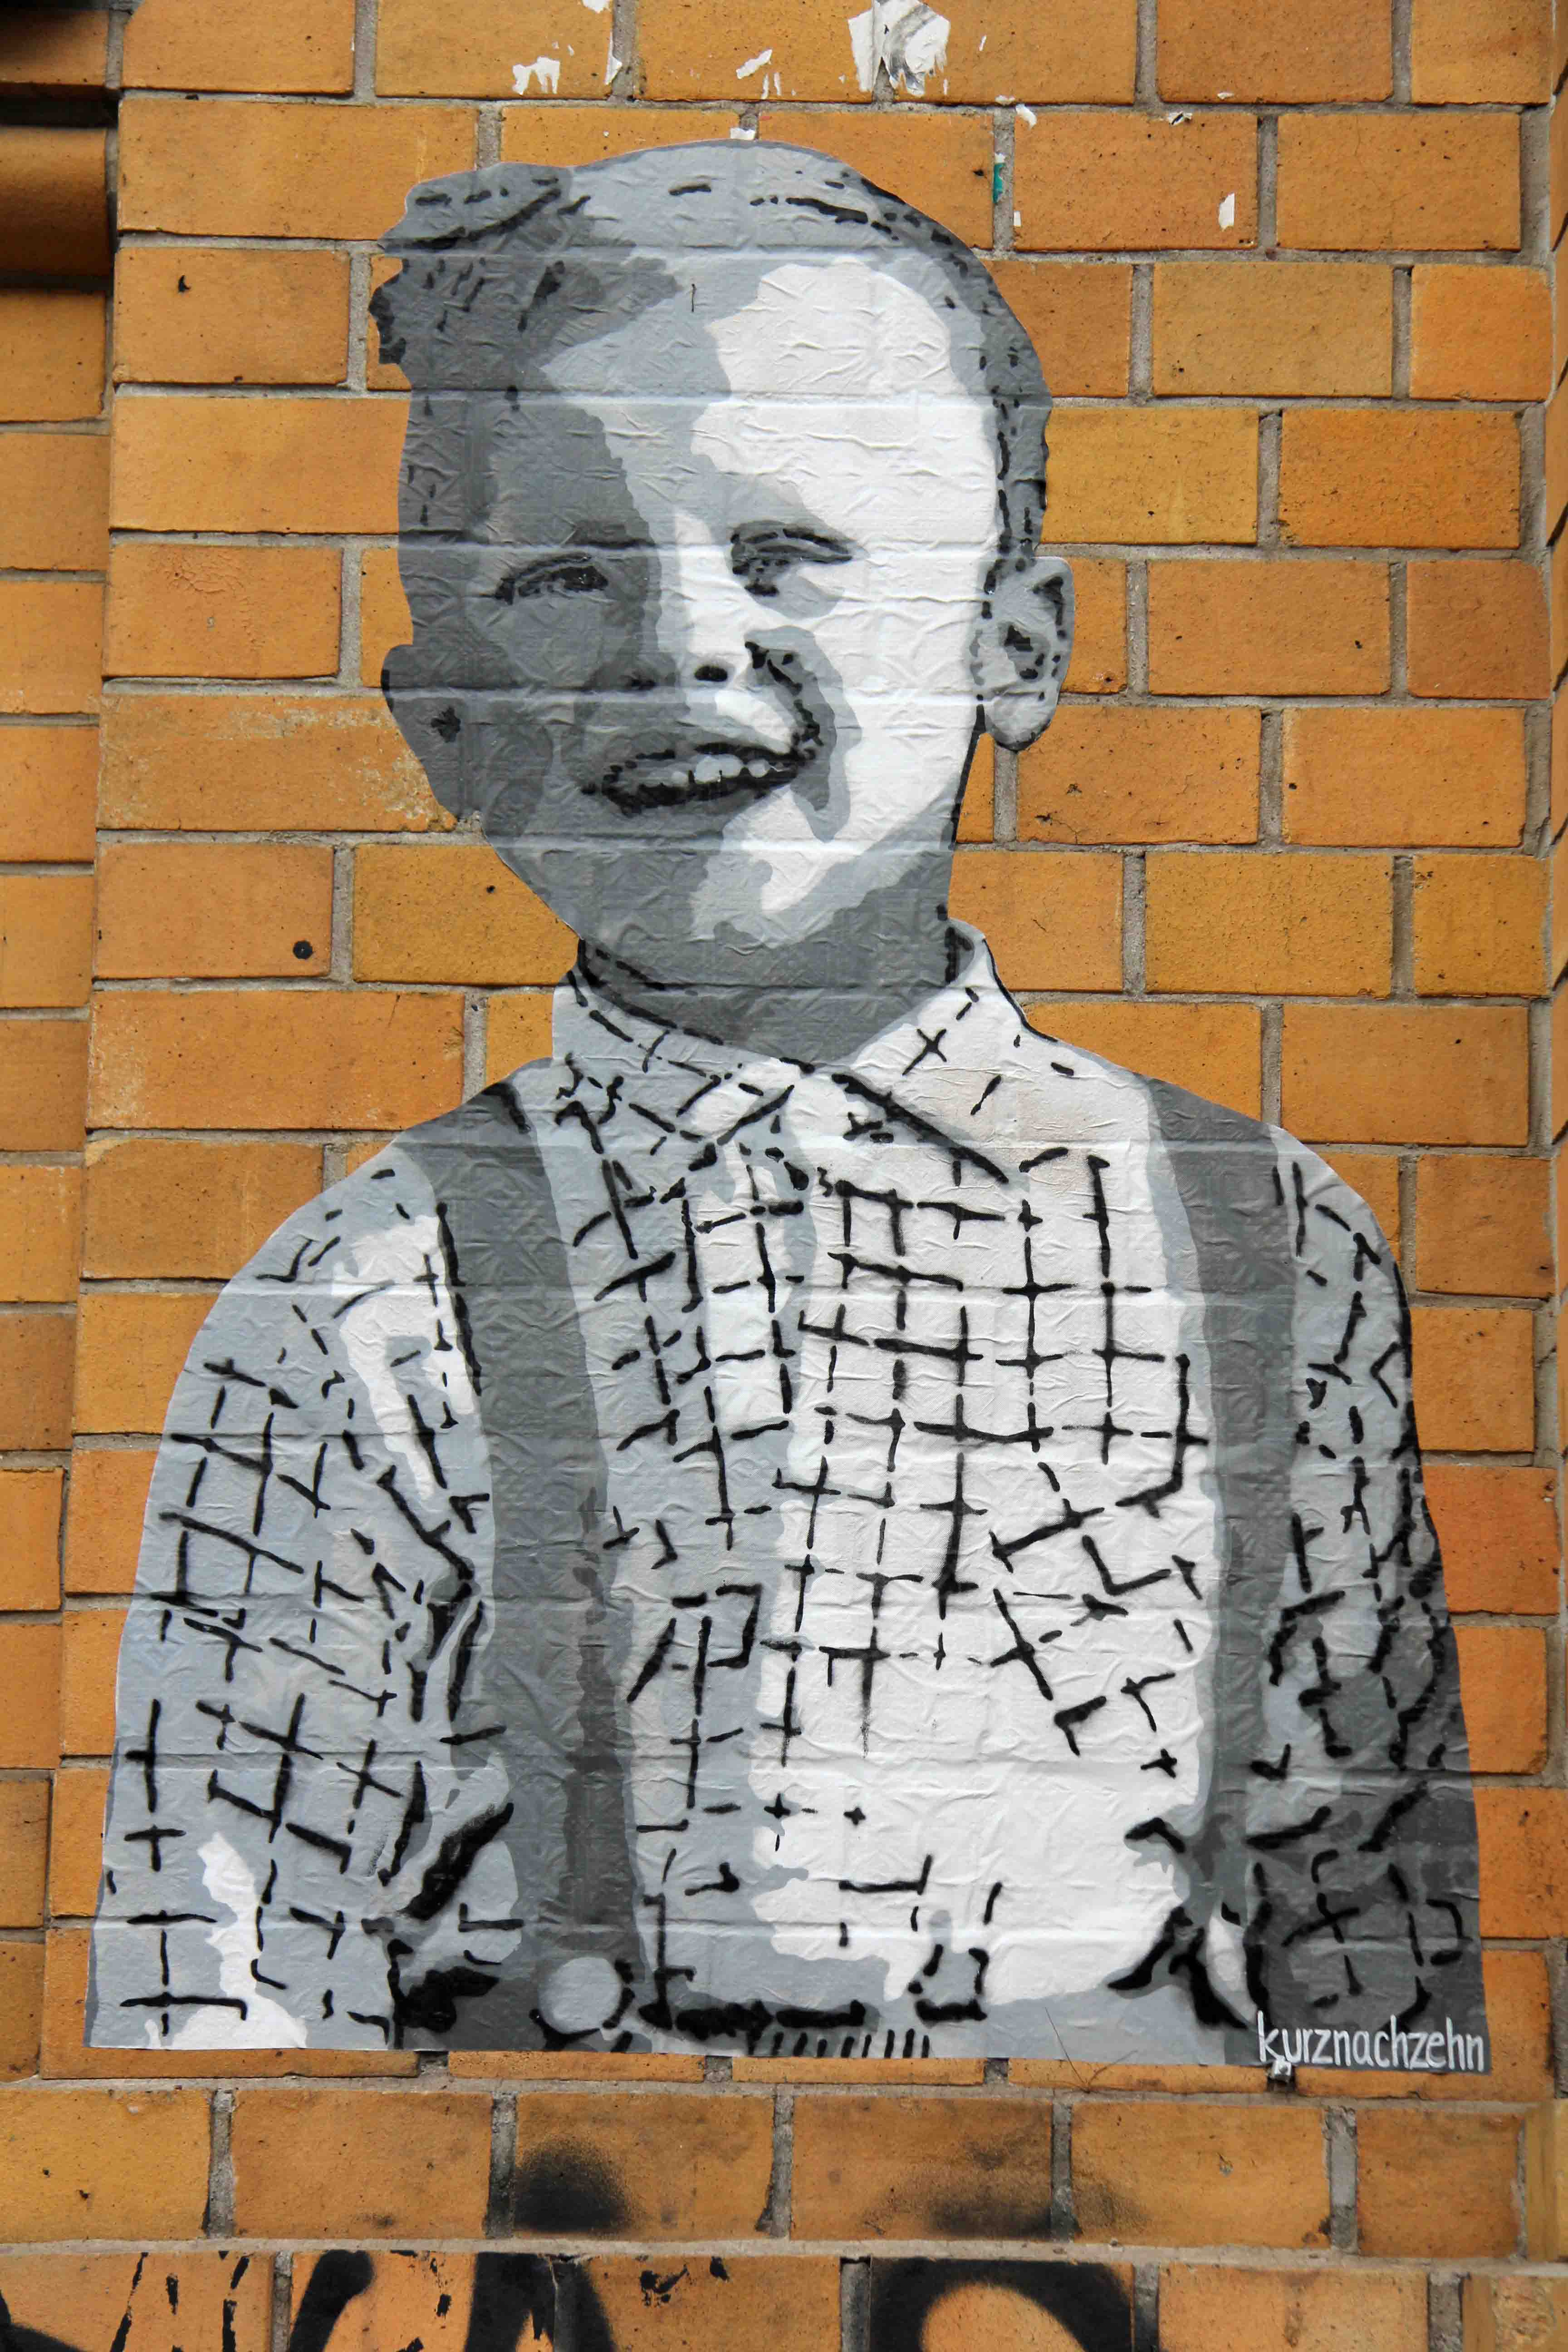 Boy With Braces - Street Art by kurznachzehn in Berlin